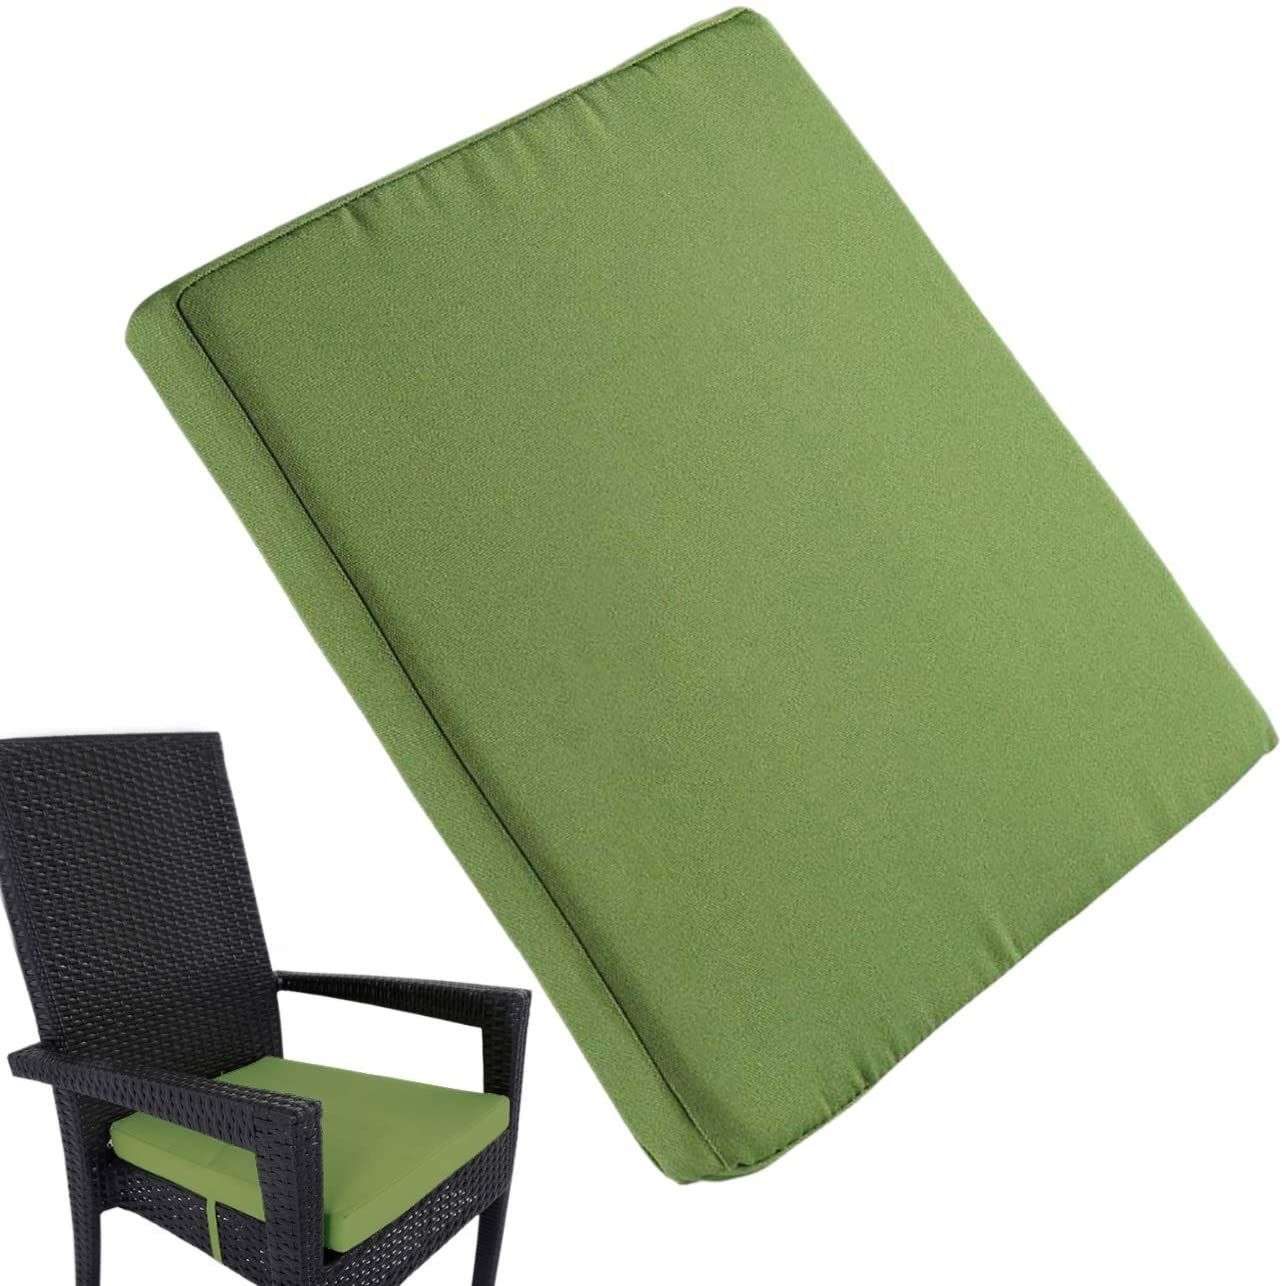 Uheng 6 Pack Patio Outdoor Chair Cushions with Ties, Seat